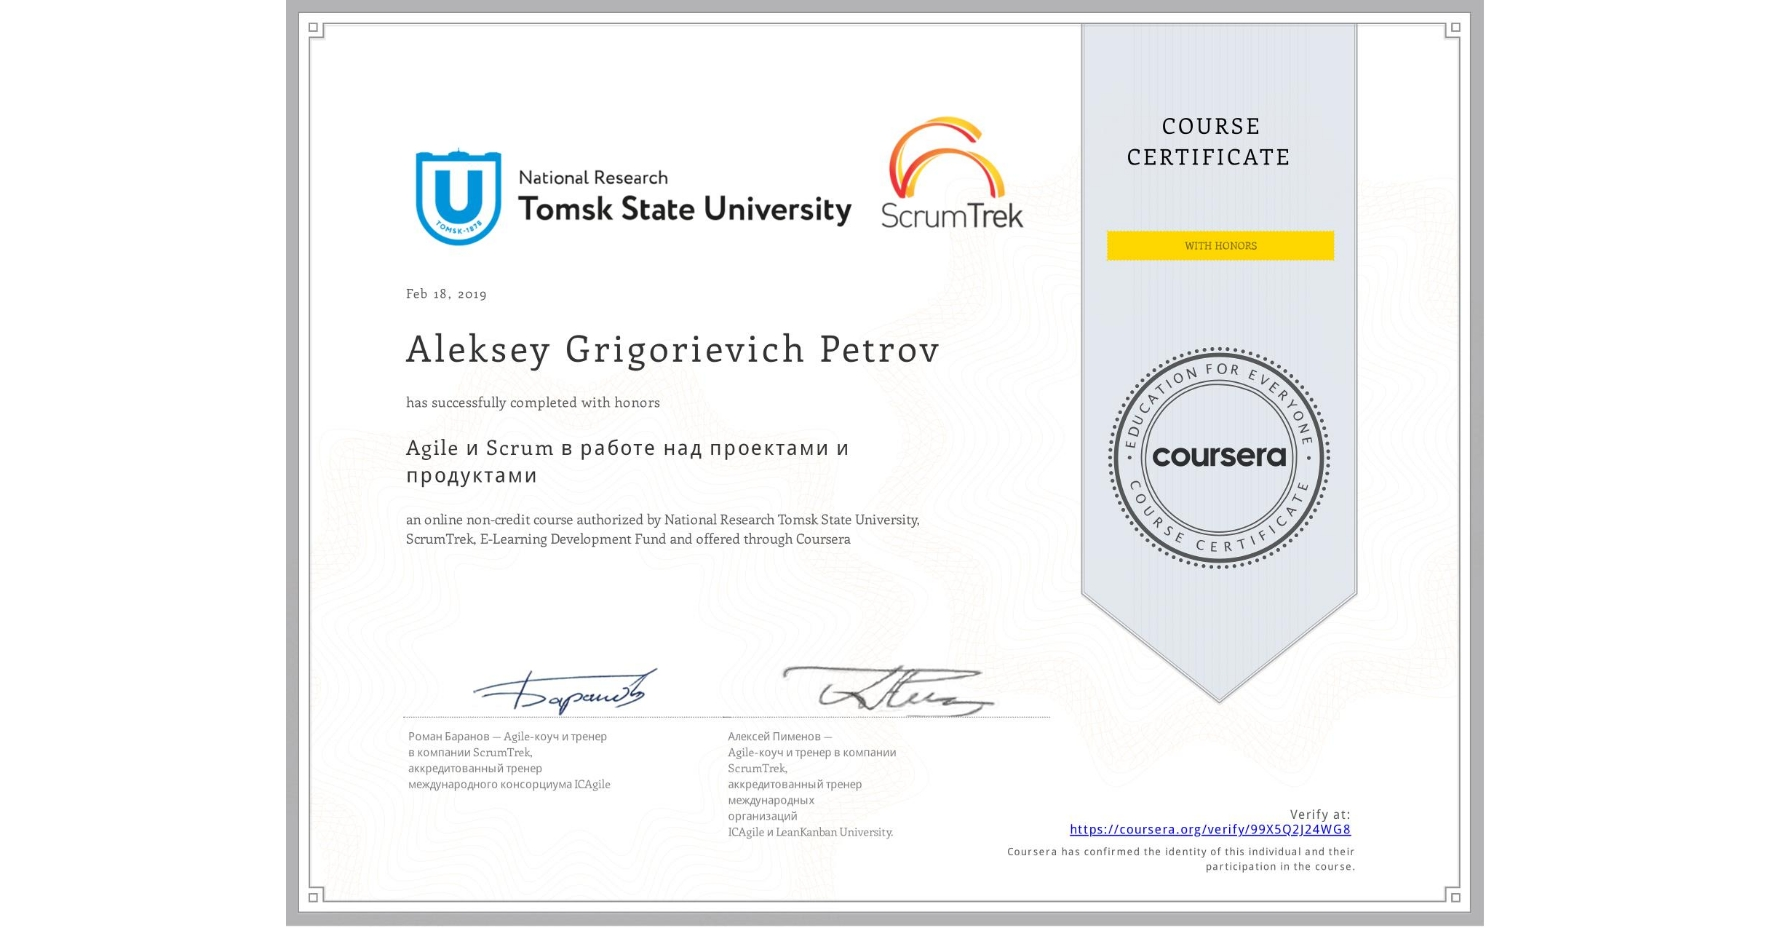 View certificate for Aleksey Grigorievich Petrov, Agile и Scrum в работе над проектами и продуктами, an online non-credit course authorized by National Research Tomsk State University, ScrumTrek & E-Learning Development Fund and offered through Coursera